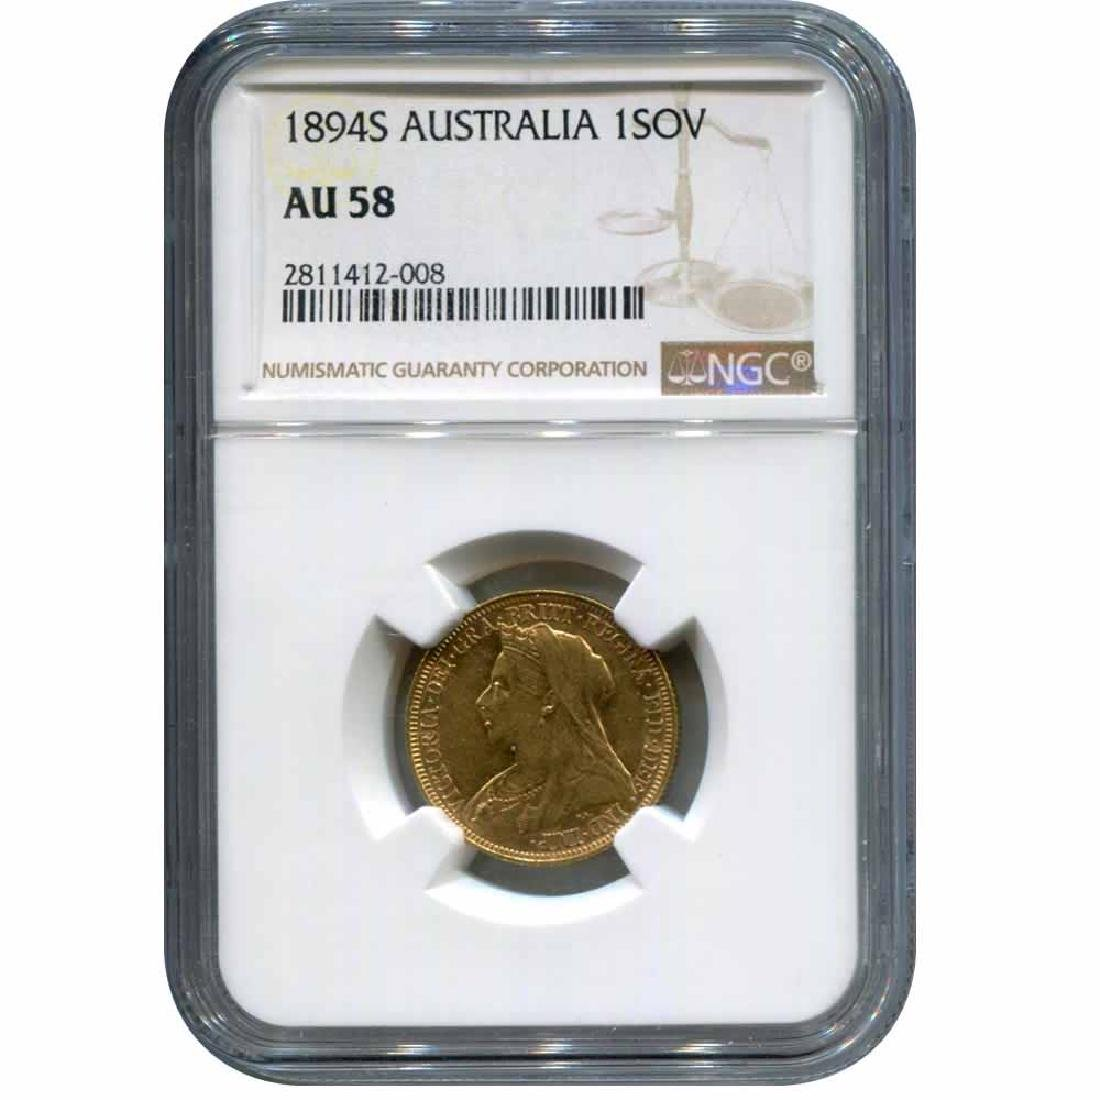 Australia gold sovereign 1894S AU58 NGC